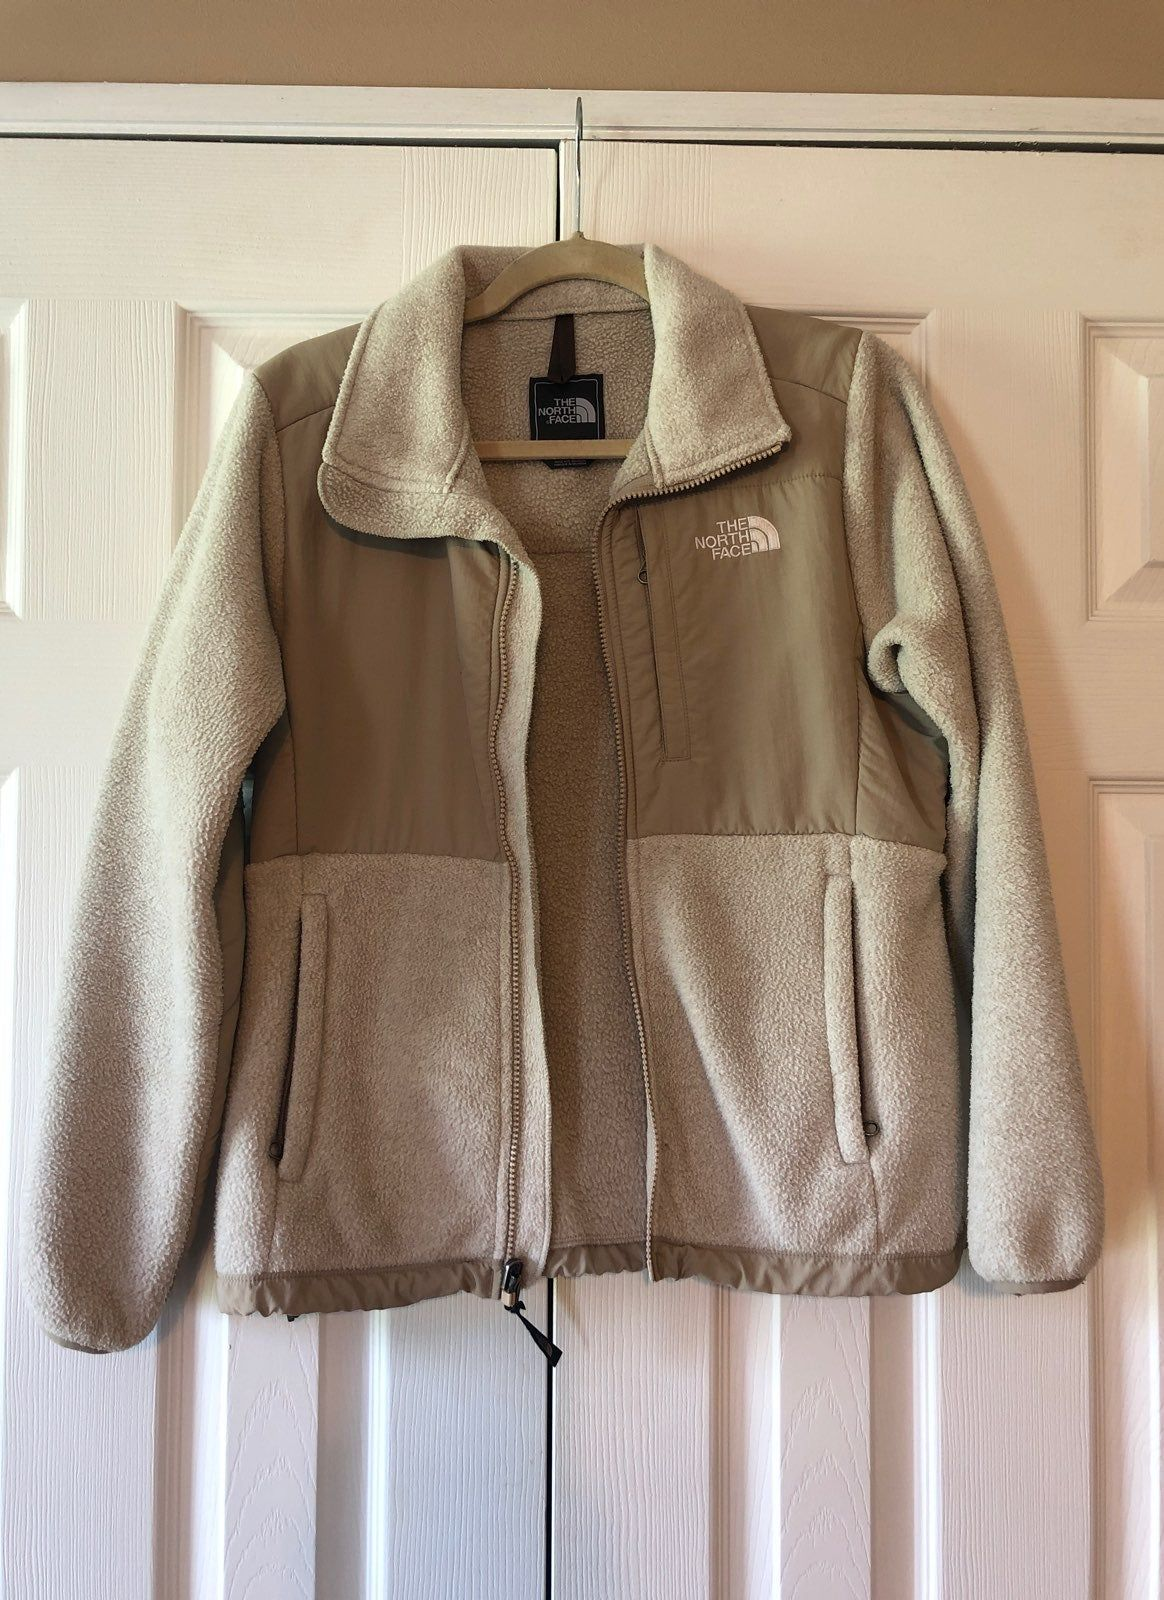 Women S North Face Jacket Great Condition Tan Khaki Two Tone Jackets North Face Fleece Jacket North Face Jacket [ 1600 x 1164 Pixel ]